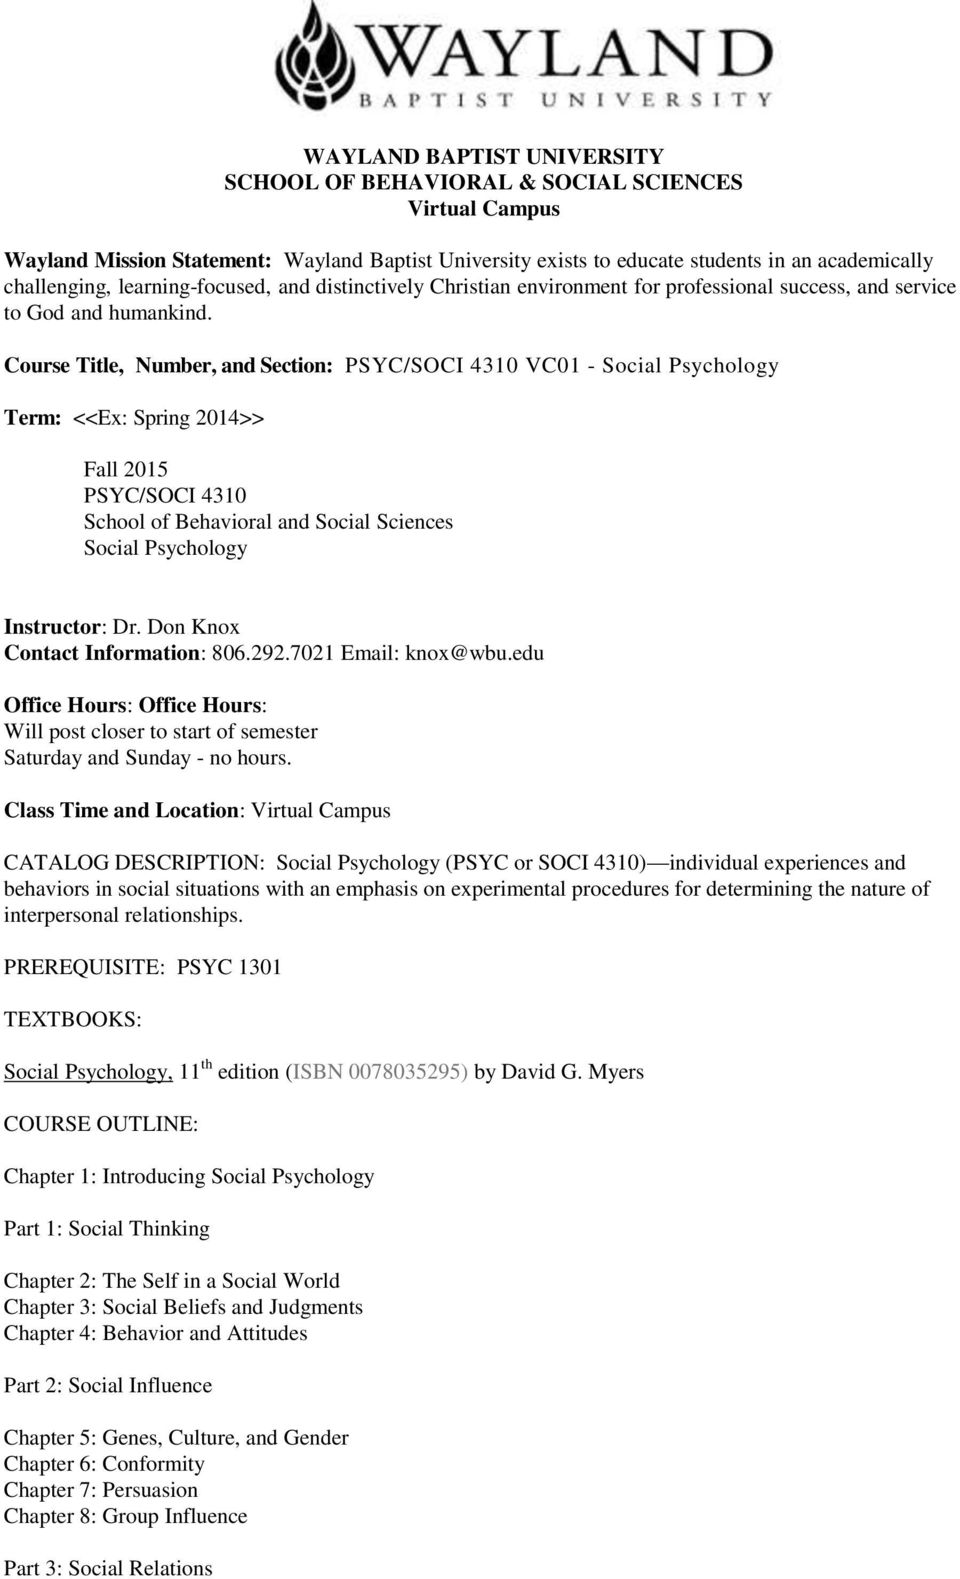 Course Title, Number, and Section: PSYC/SOCI 4310 VC01 - Social Psychology Term: <<Ex: Spring 2014>> Fall 2015 PSYC/SOCI 4310 School of Behavioral and Social Sciences Social Psychology Instructor: Dr.